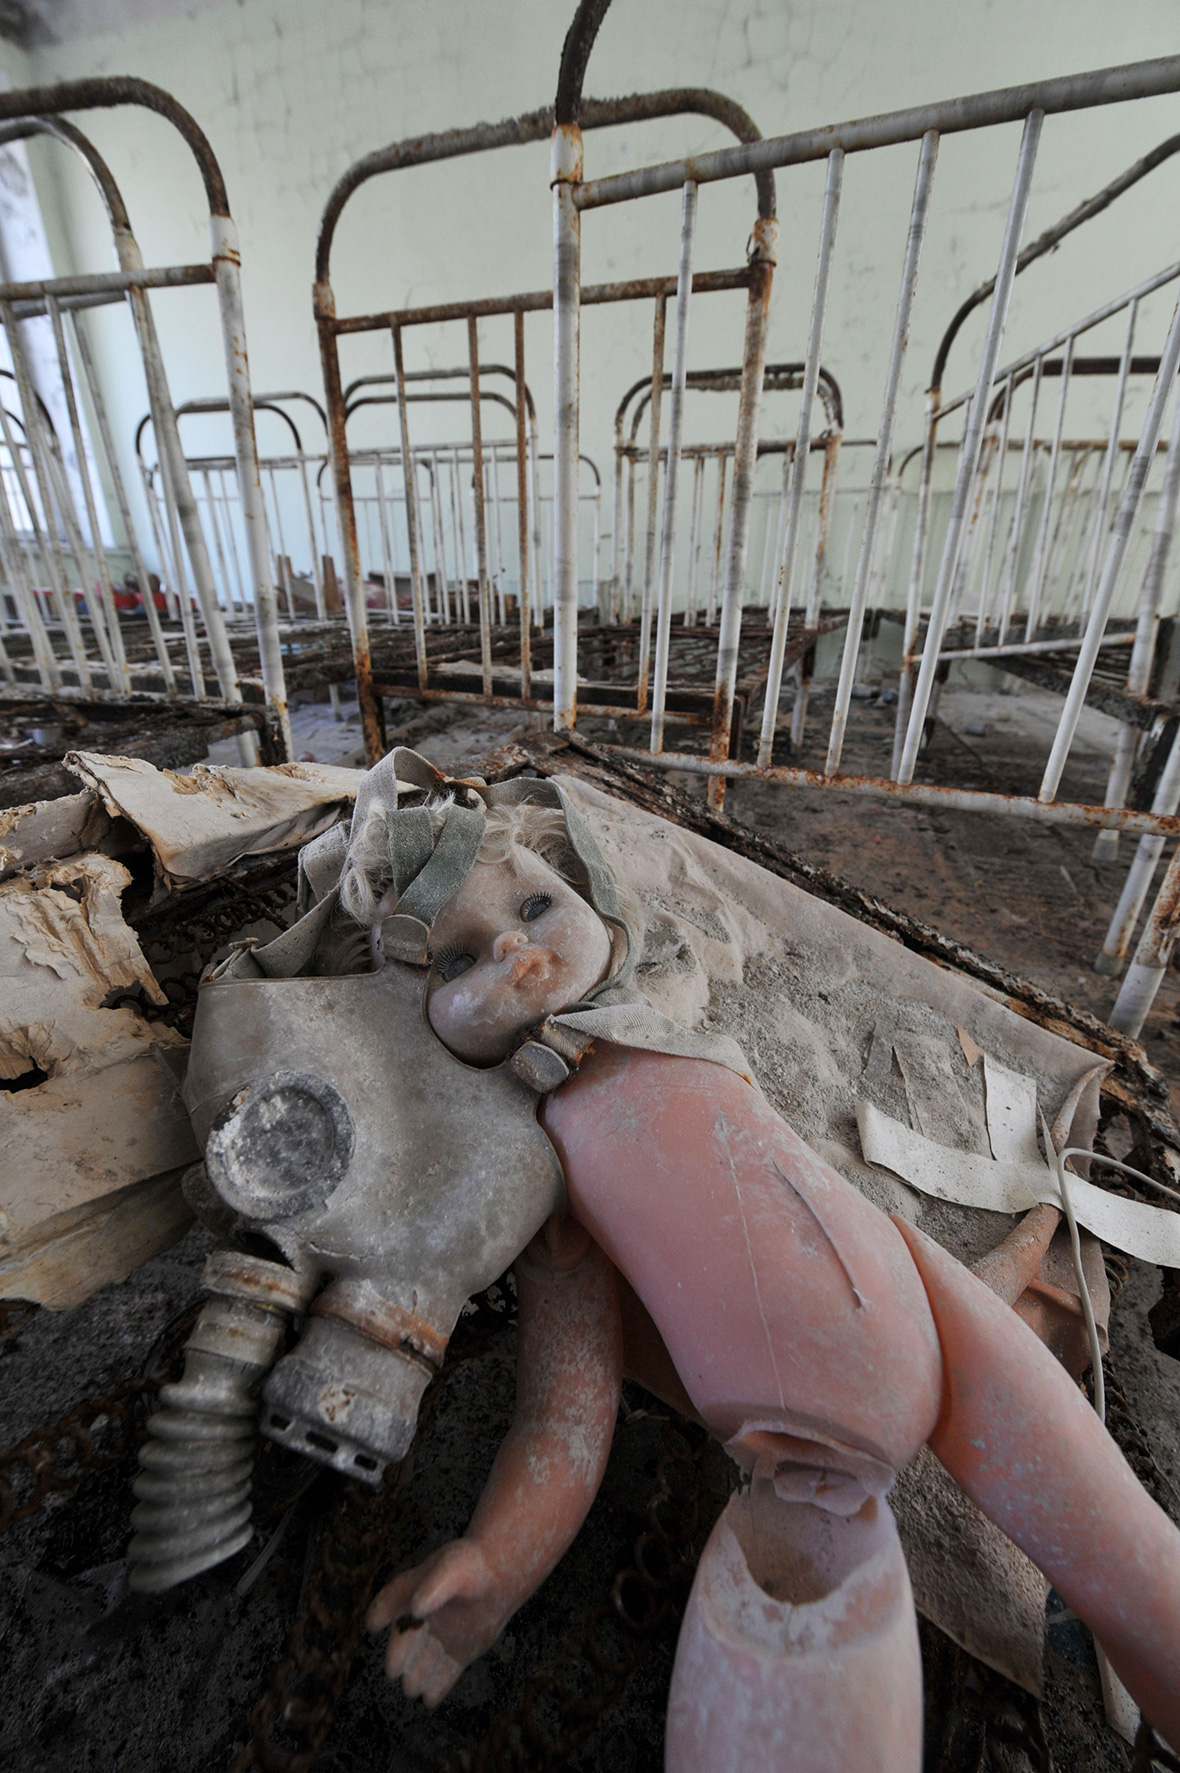 Chernobyl: Haunting photos of abandoned ghost towns 30 years after the nuclear disaster